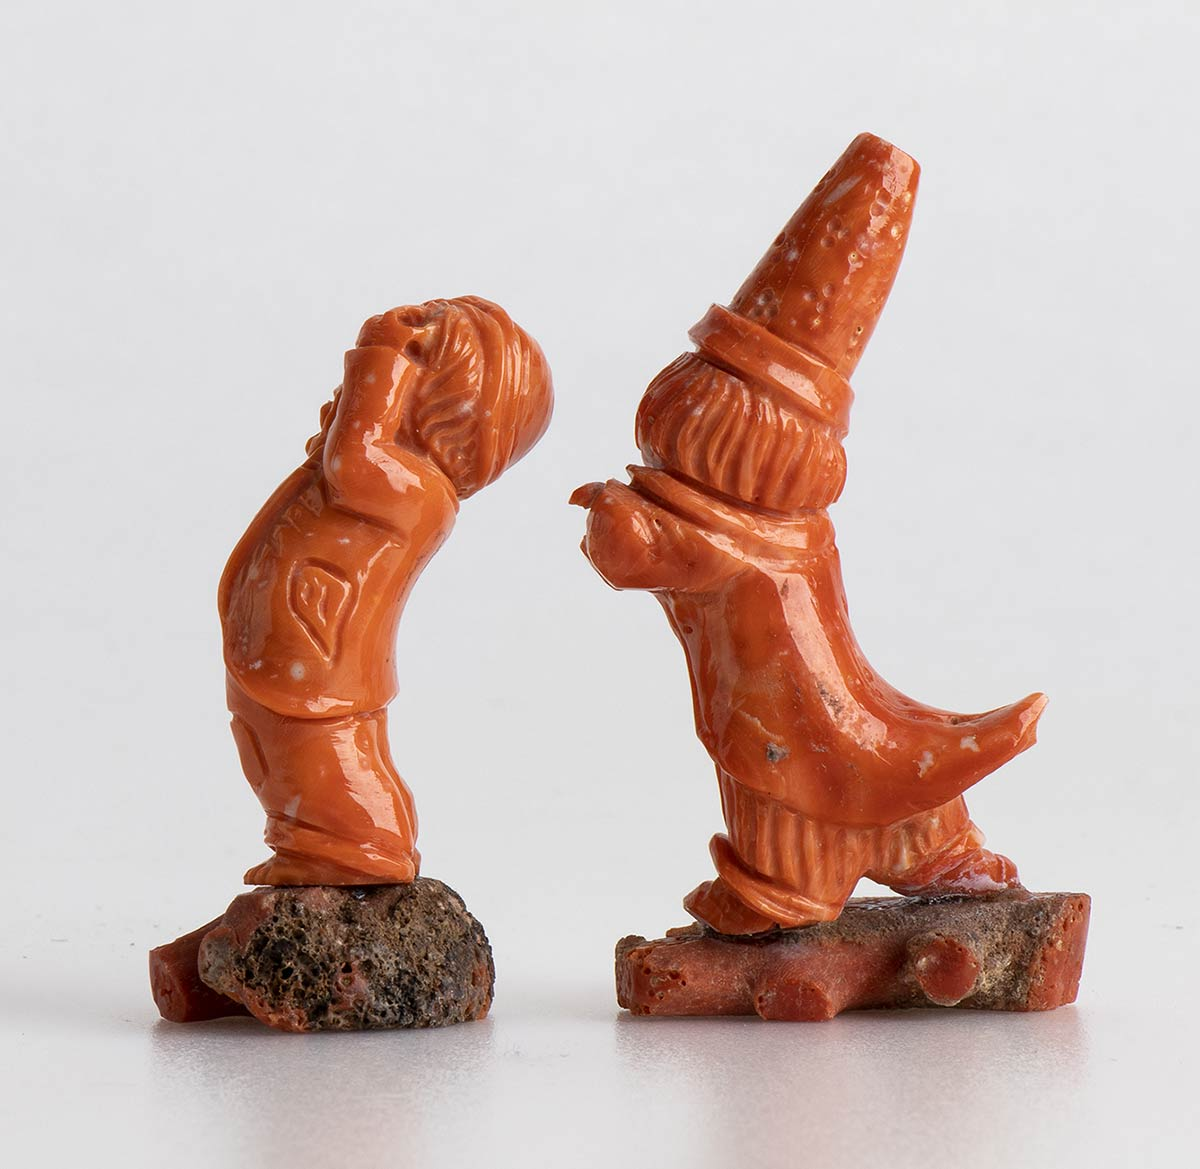 A pair of Cerasuolo coral carving - Torre del Greco, early 20th Century - Image 2 of 2